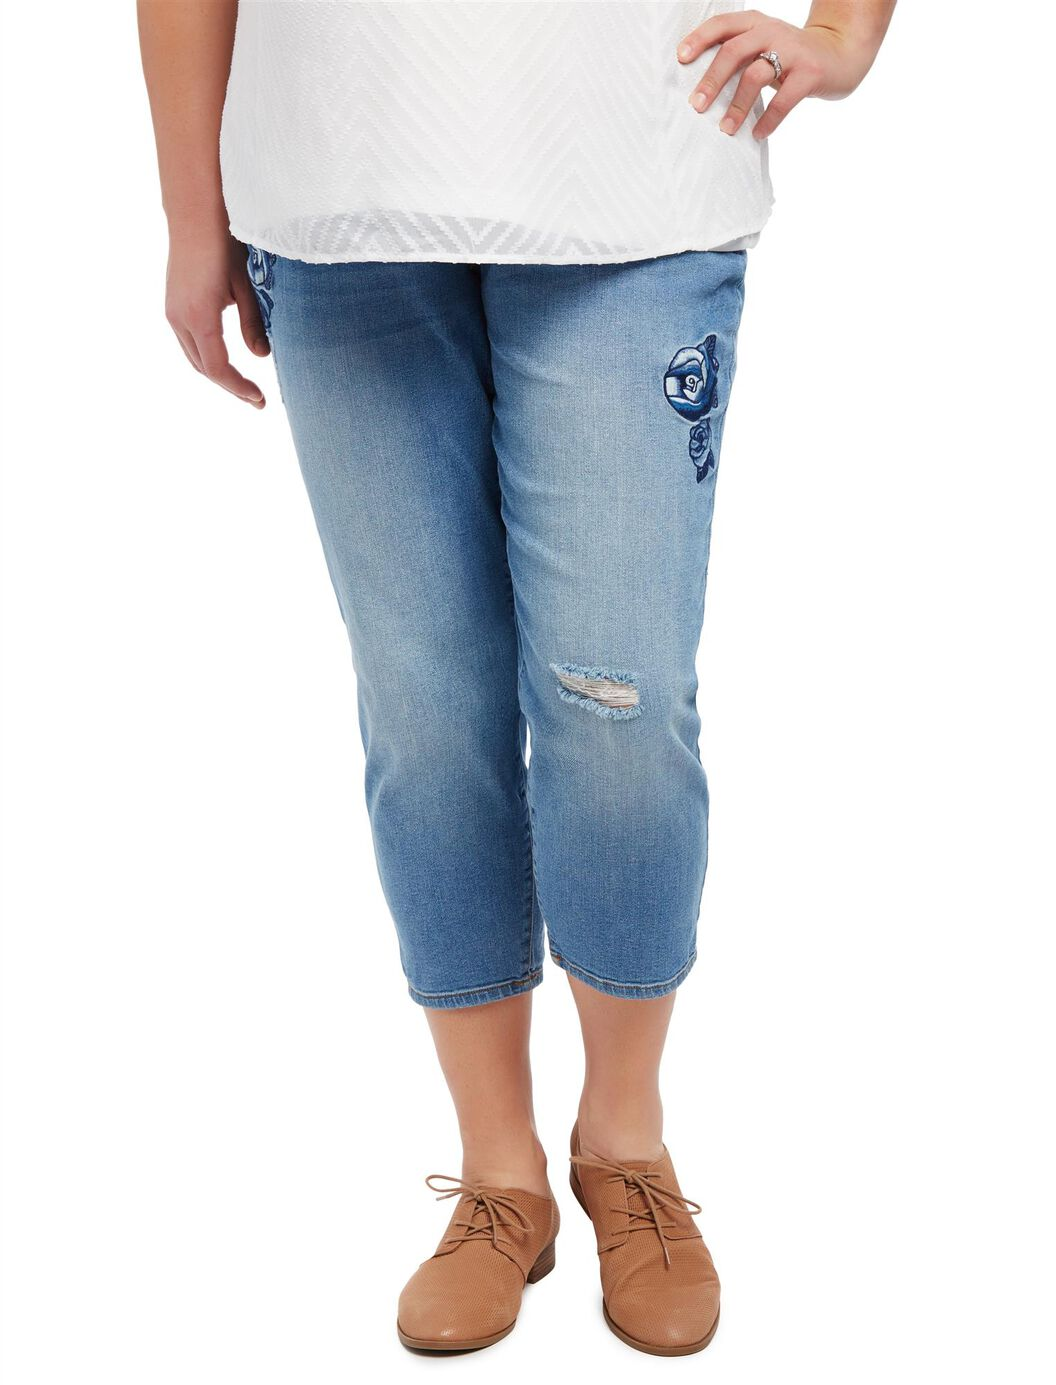 Plus Size Secret Fit Belly Floral Embroidered Maternity Crop Jeans at Motherhood Maternity in Victor, NY | Tuggl